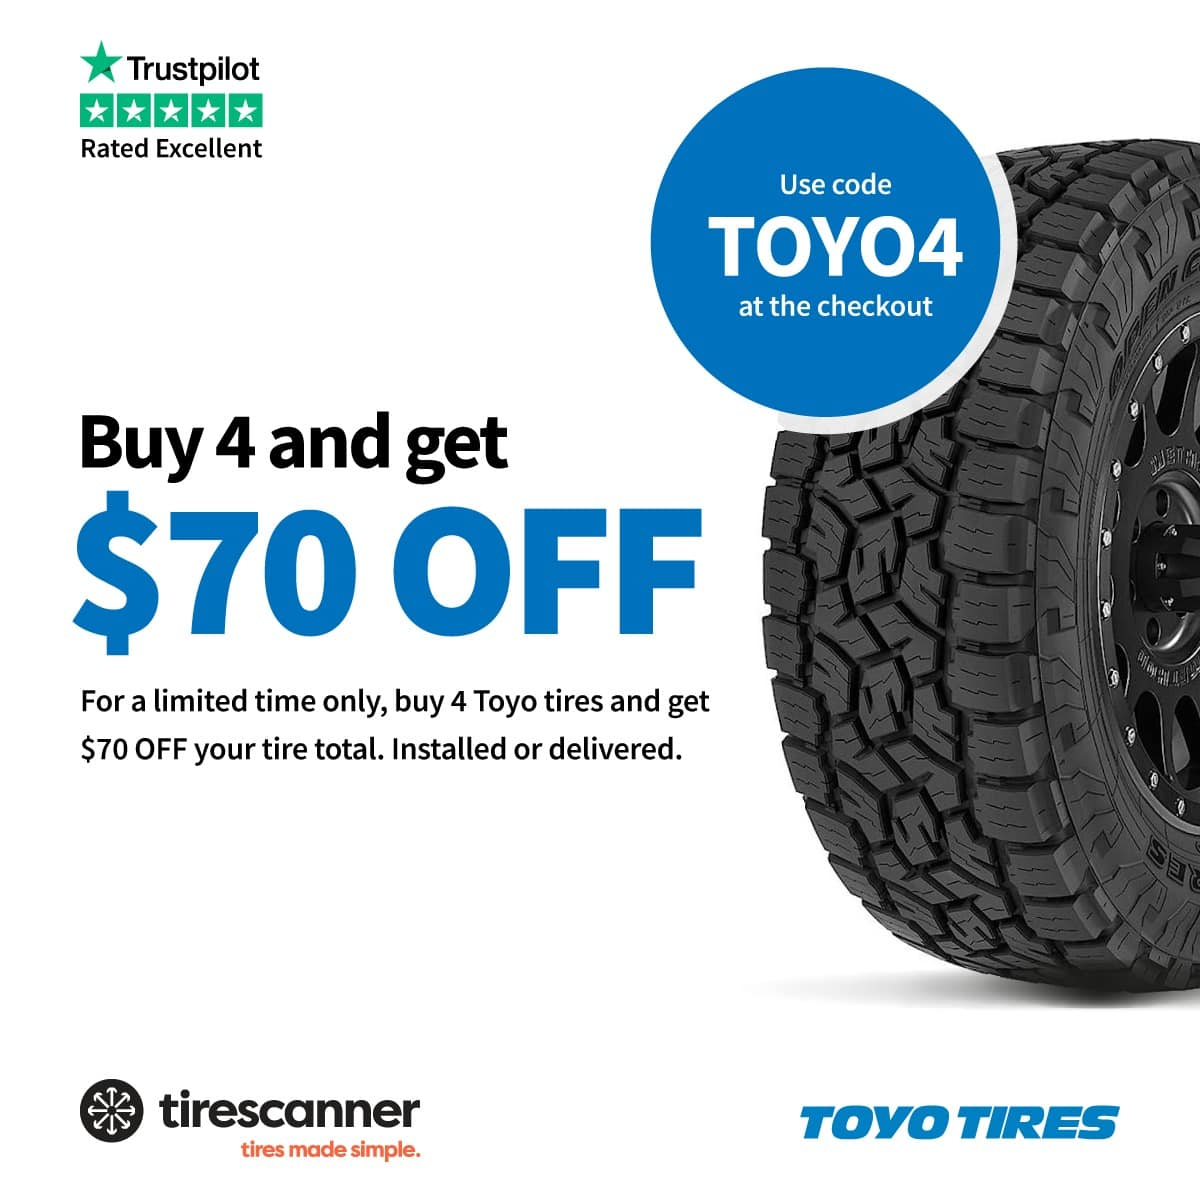 TireScanner: Instant $70 off any set of 4 TOYO tires, installed or delivered, valid until 30th of June